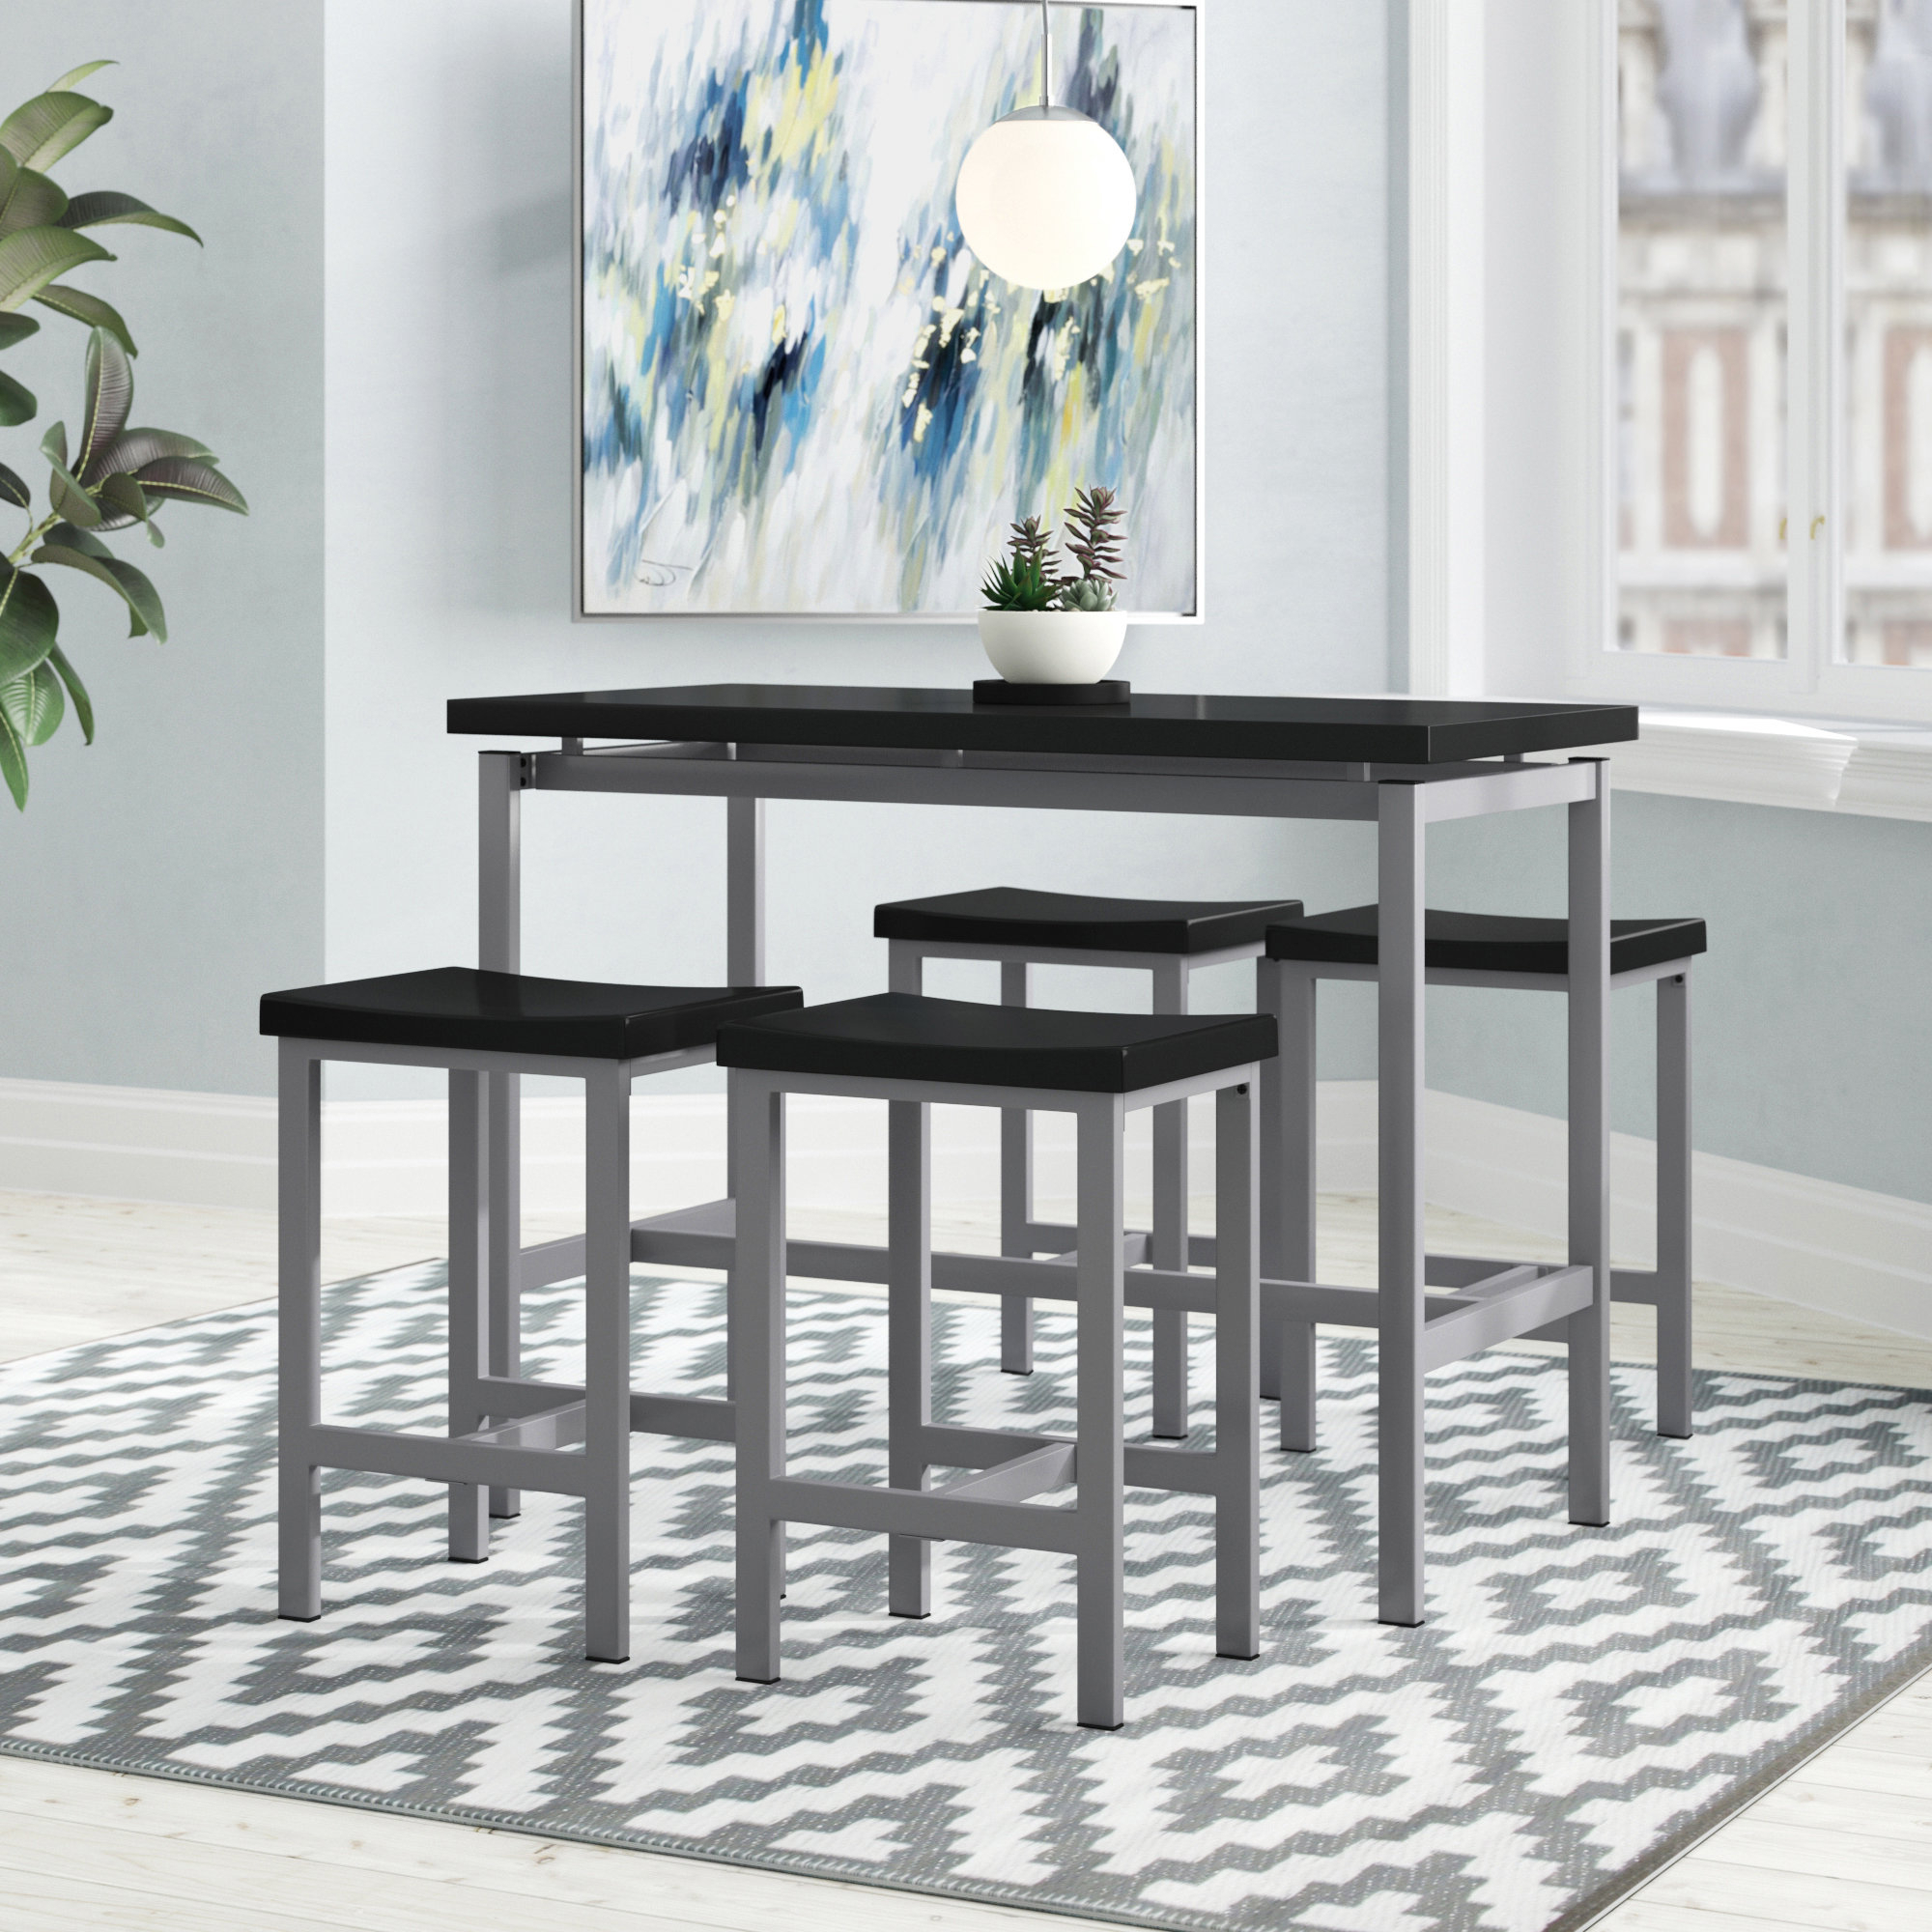 Fashionable Honoria 3 Piece Dining Sets Pertaining To Ebern Designs Mysliwiec 5 Piece Counter Height Breakfast Nook Dining (View 12 of 25)